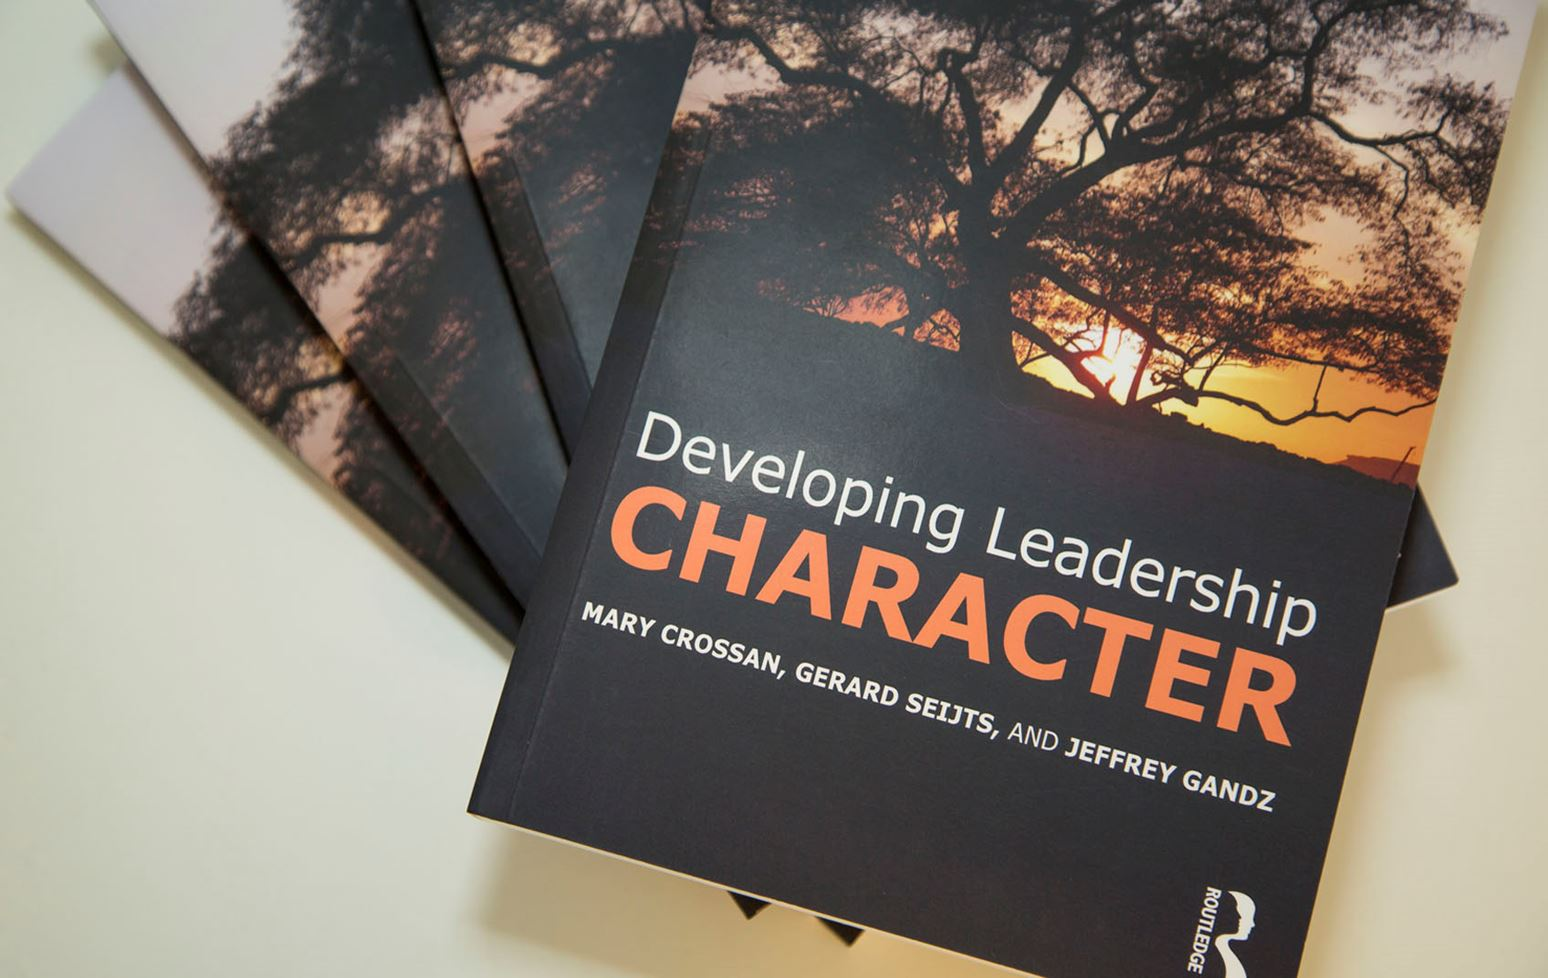 Gerard Seijts | Leader Character: An overlooked, but essential component to your success